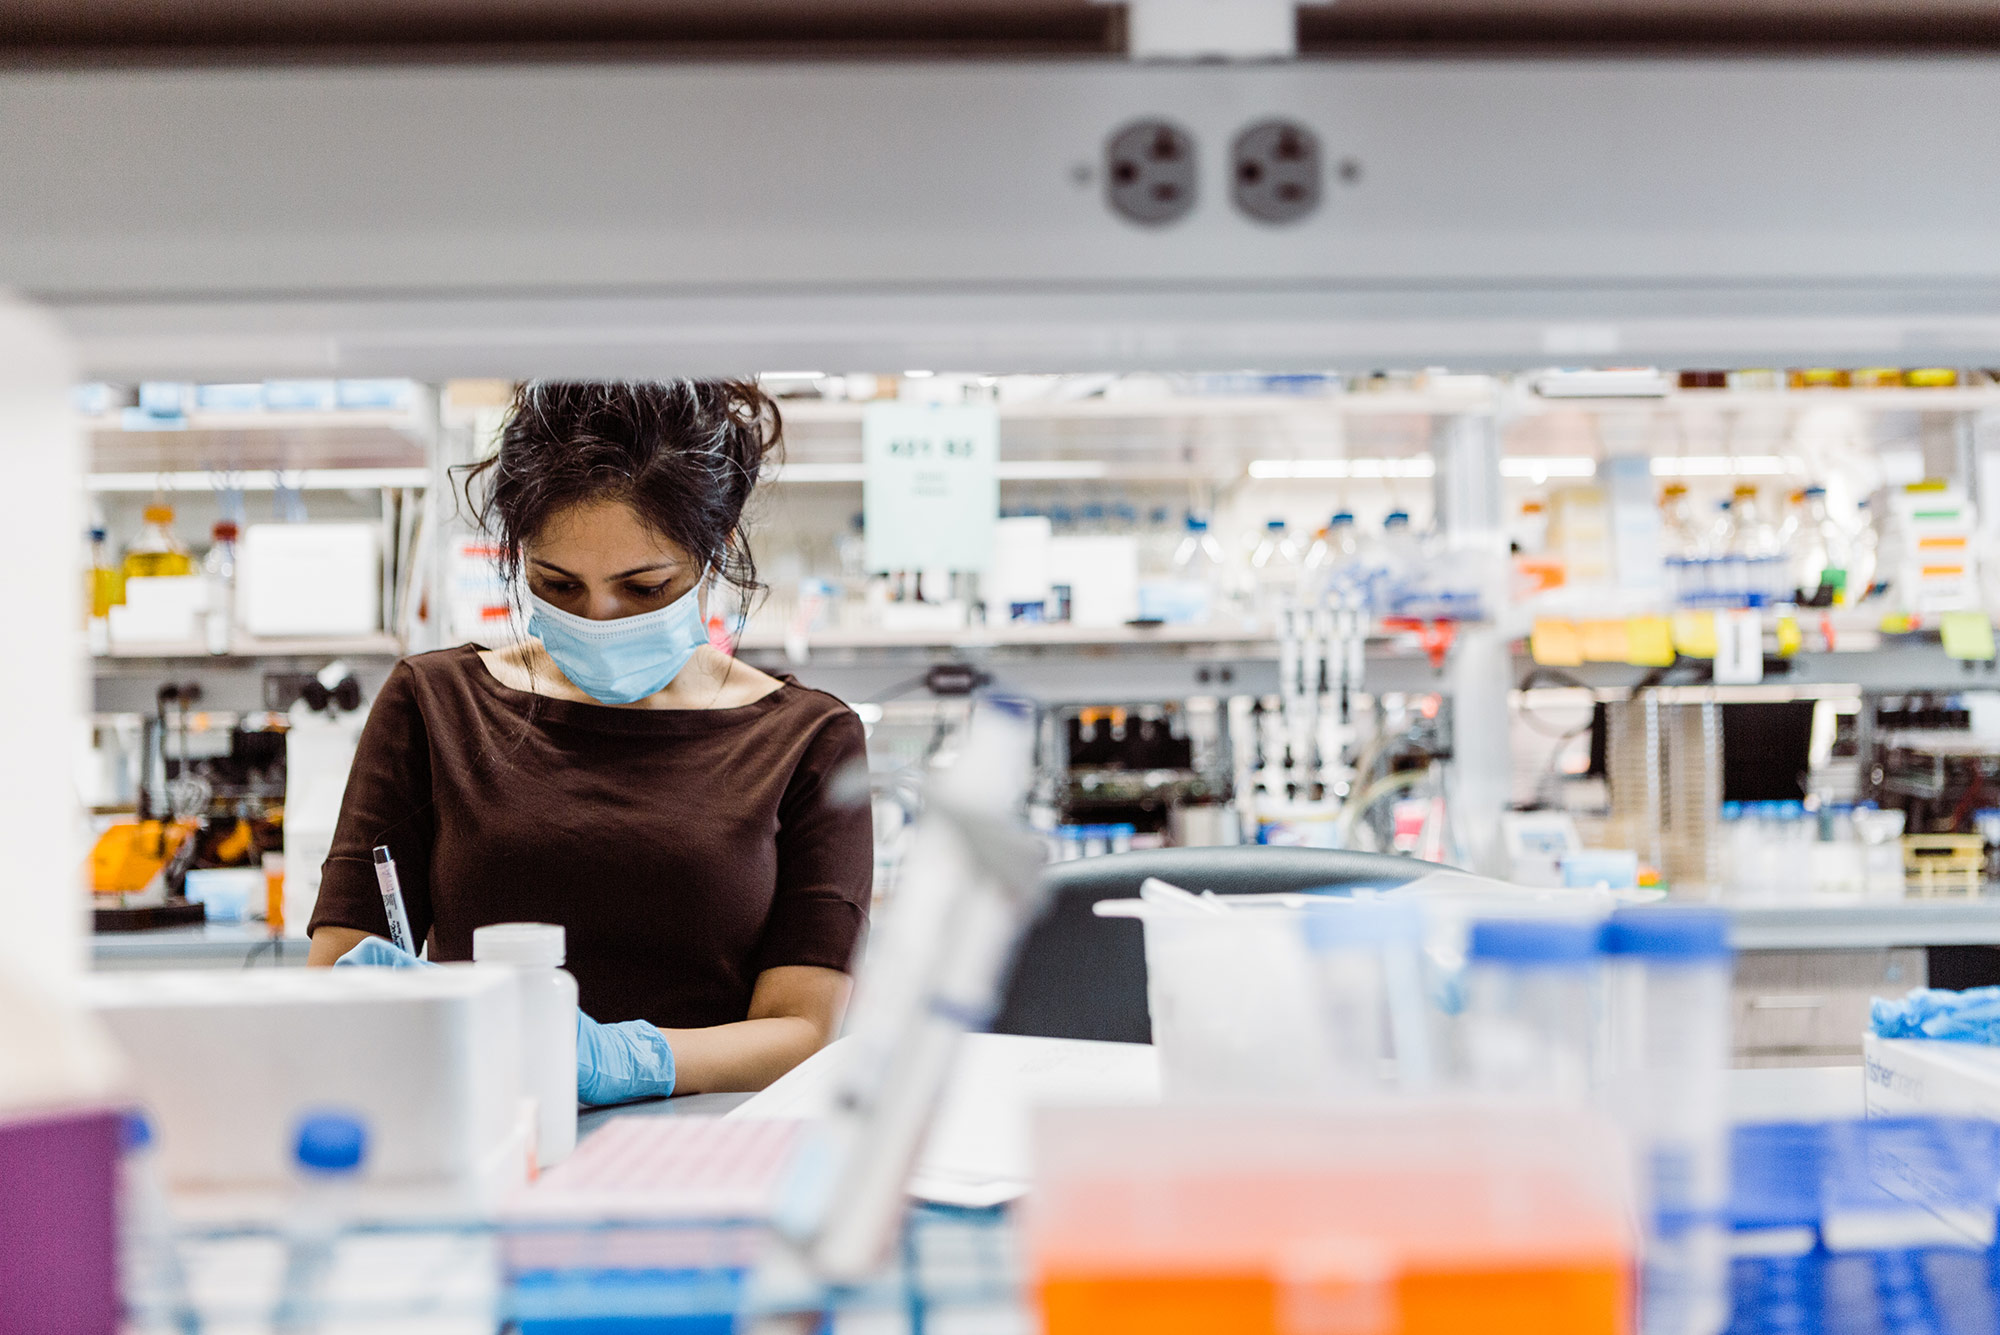 Photo of a researcher with a blue mask and gloves working on the 4th Floor lab of Kilachand Center during Covid-19 pandemic. The photo is framed by the shelves on top of the desks, the foreground is blurred.